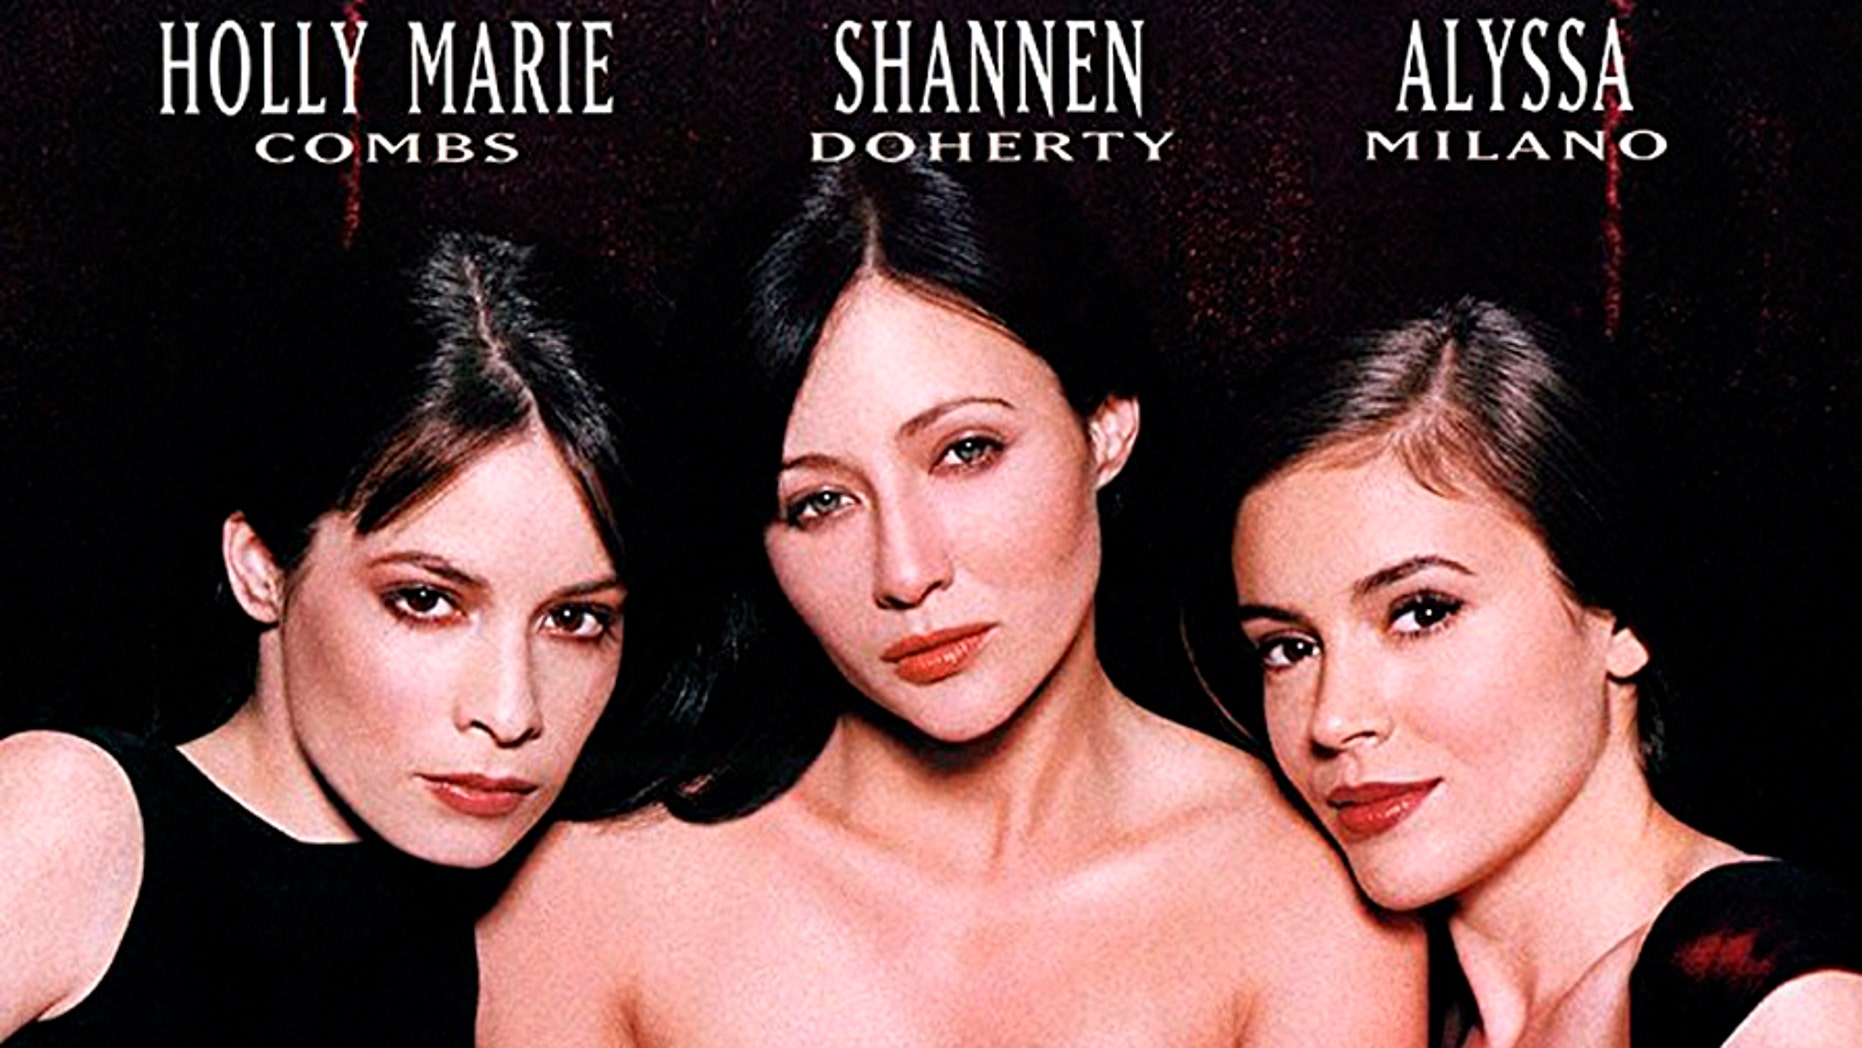 "The original cast of 'the WB series ""Charmed,"" featured Holly Marie Combs, Shannen Doherty and Alyssa Milano."